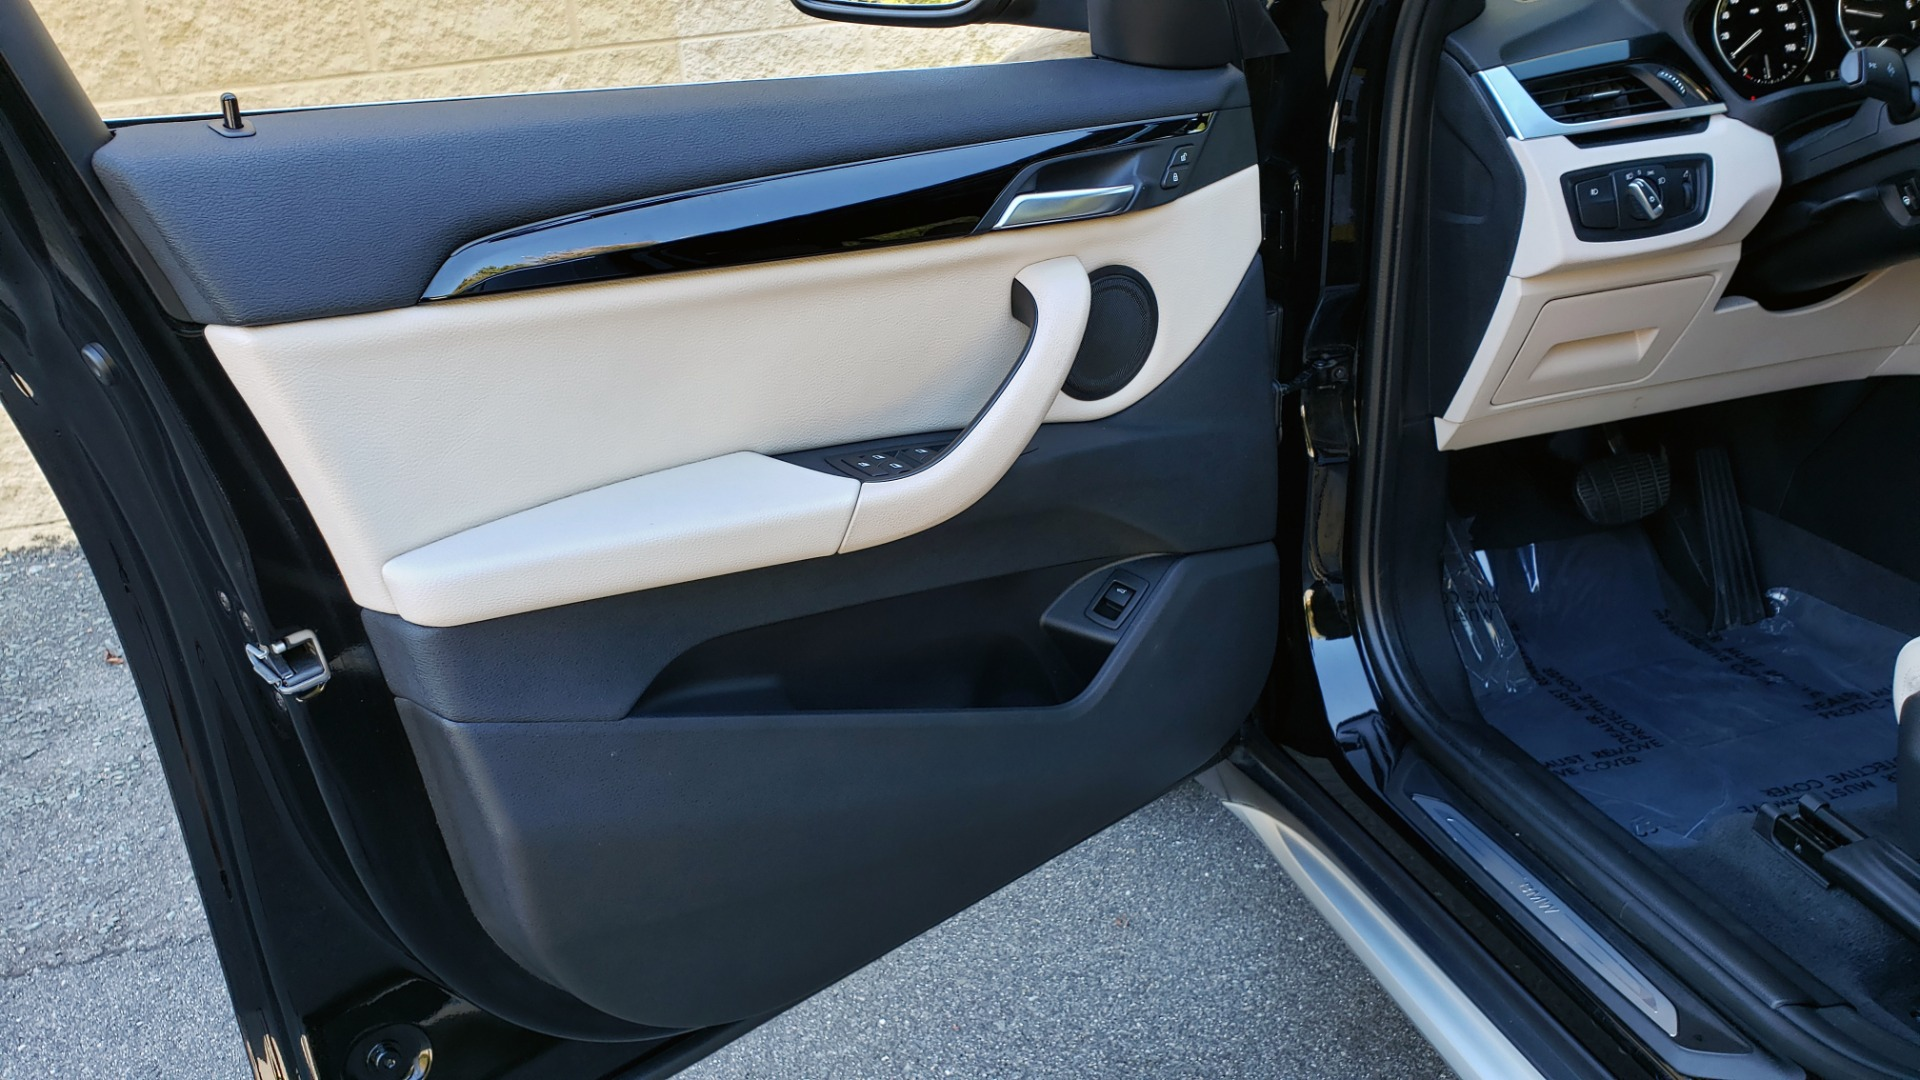 Used 2018 BMW X1 SDRIVE28I / HEATED SEATS / 4-CYL / 8-SPD AUTO / REARVIEW for sale Sold at Formula Imports in Charlotte NC 28227 32